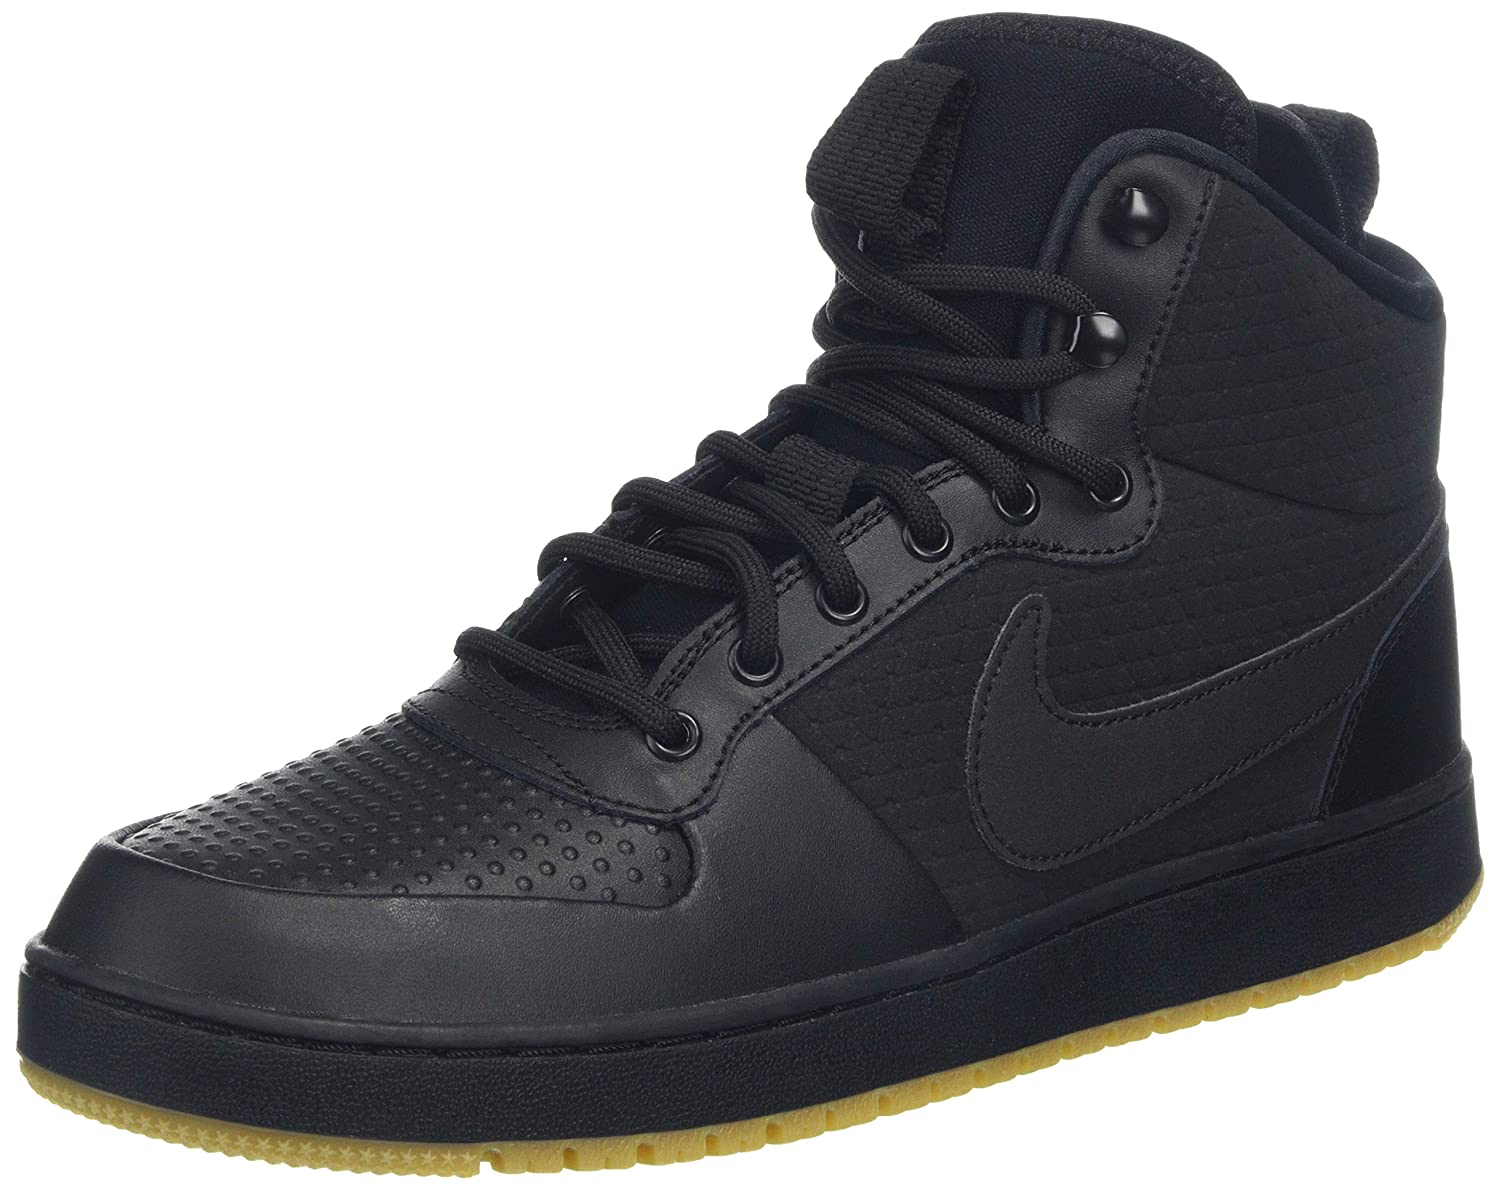 13726c1f7a7c Nike Men s Ebernon Mid Winter Gymnastics Shoes